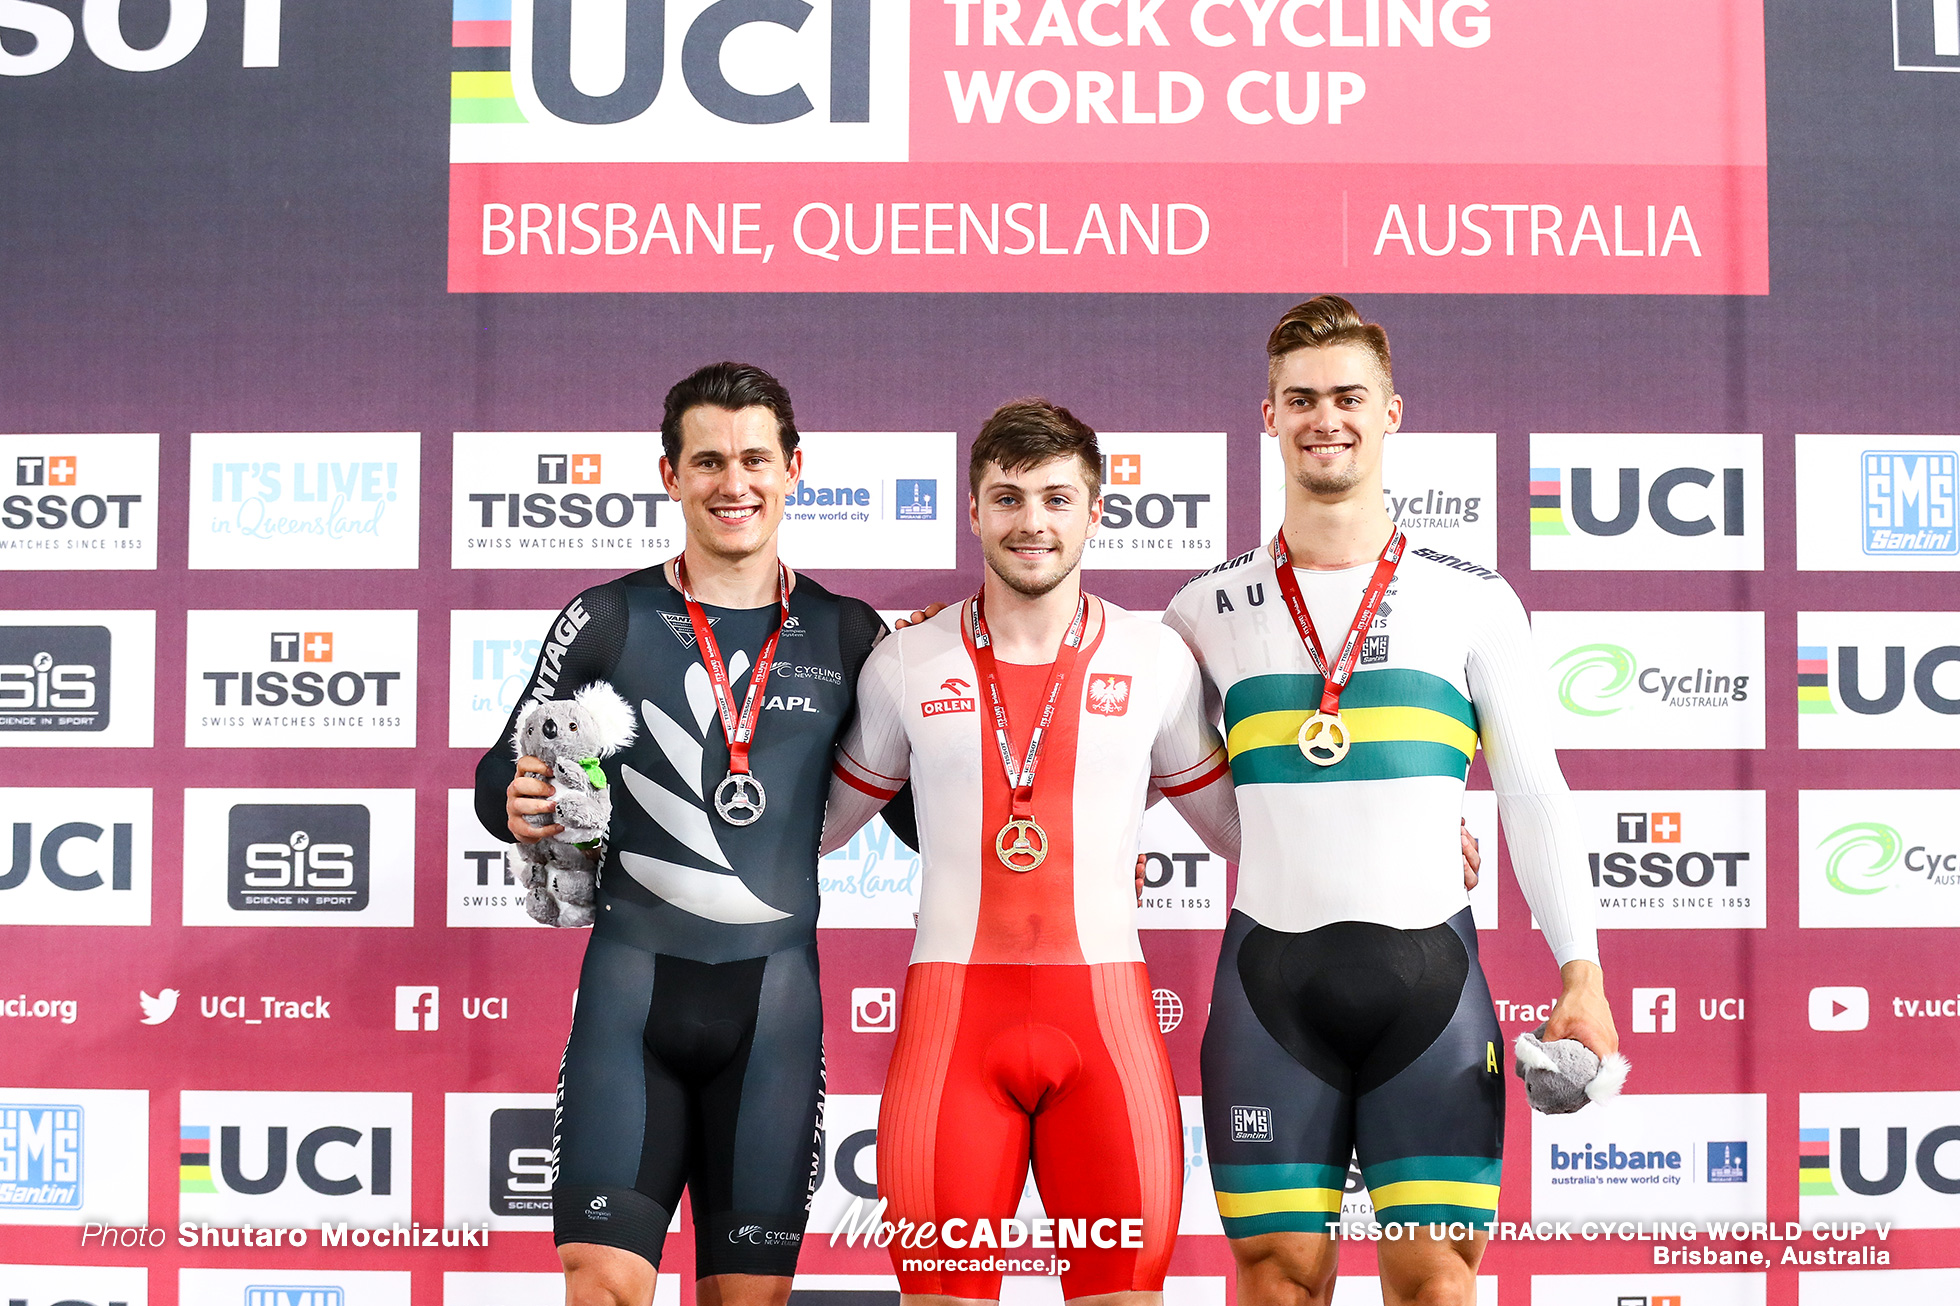 Final / Men's Sprint / TISSOT UCI TRACK CYCLING WORLD CUP V, Brisbane, Australia, Mateusz RUDYK マテウス・ルディク Sam WEBSTER サム・ウェブスター Matthew GLAETZER マシュー・グレーツァー